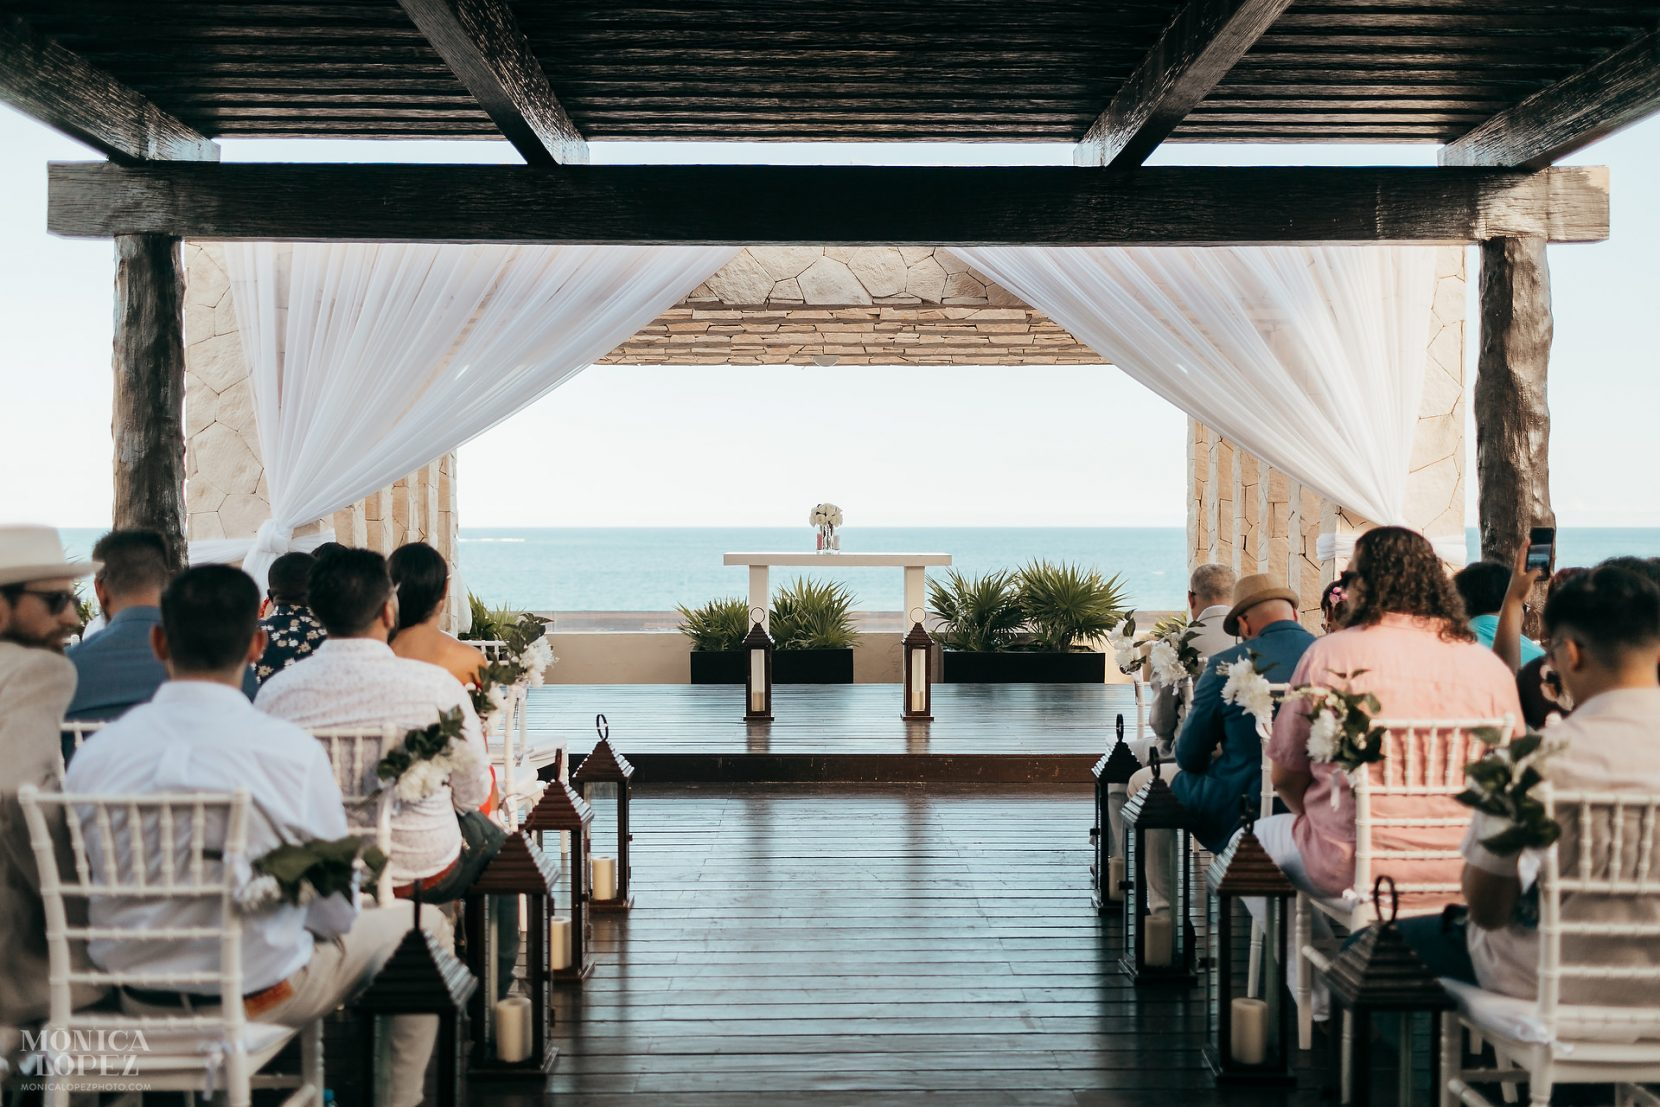 Royalton Riviera Cancun Hideaway Sky Terrace Wedding Set up